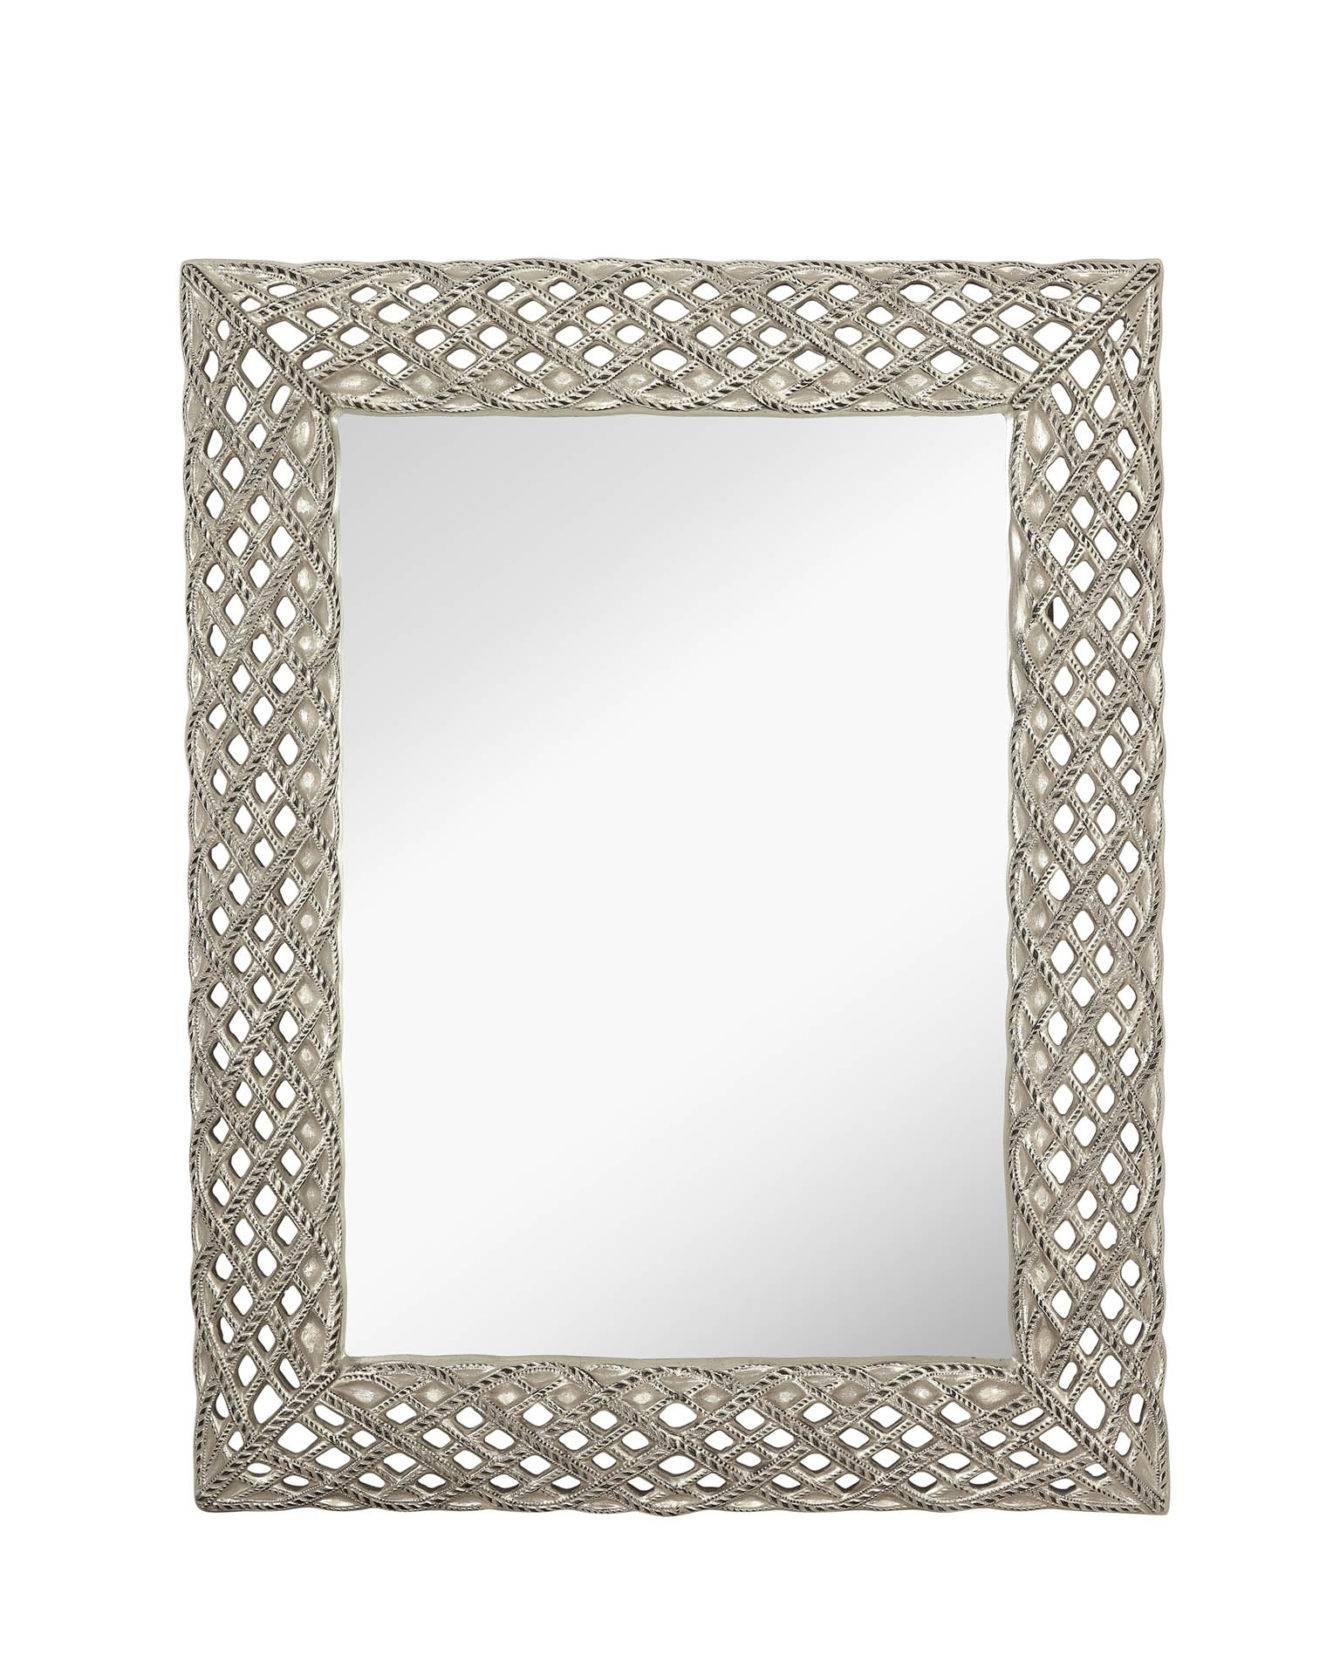 Majestic Mirror & Frame for Ornamental Mirrors (Image 15 of 25)